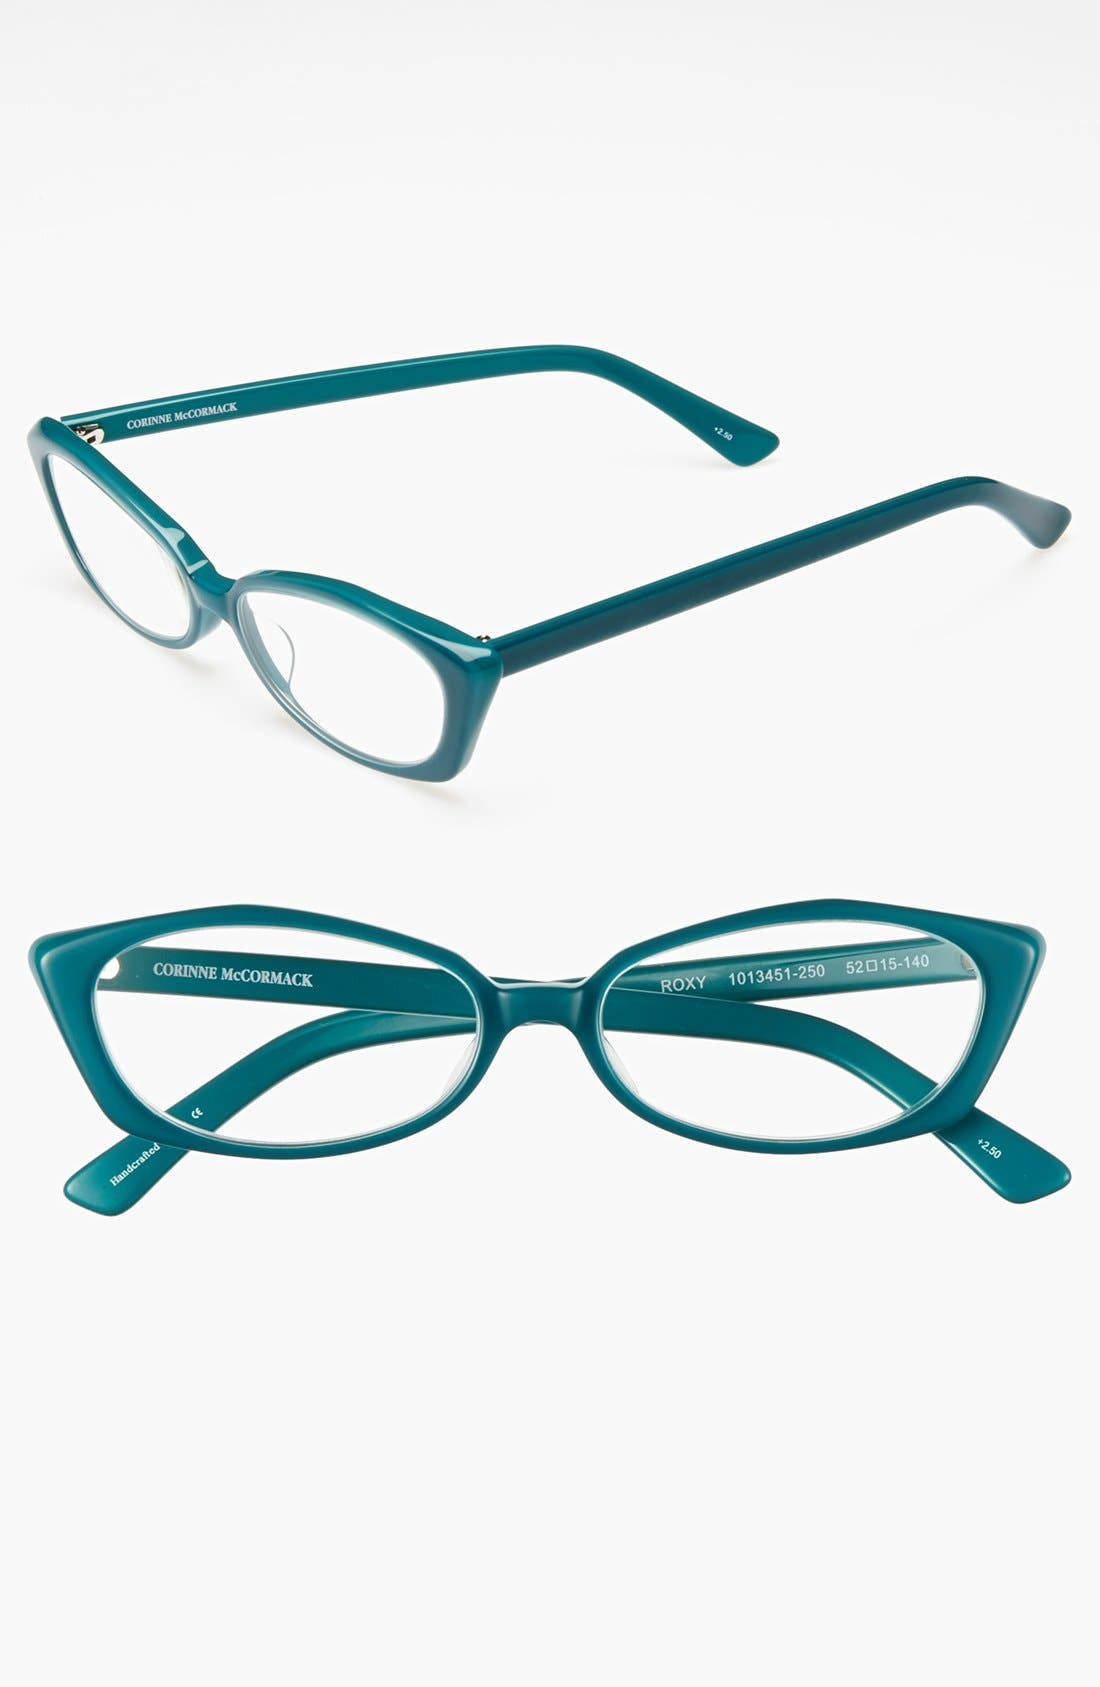 Main Image - Corinne McCormack 'Roxy' 52mm Reading Glasses